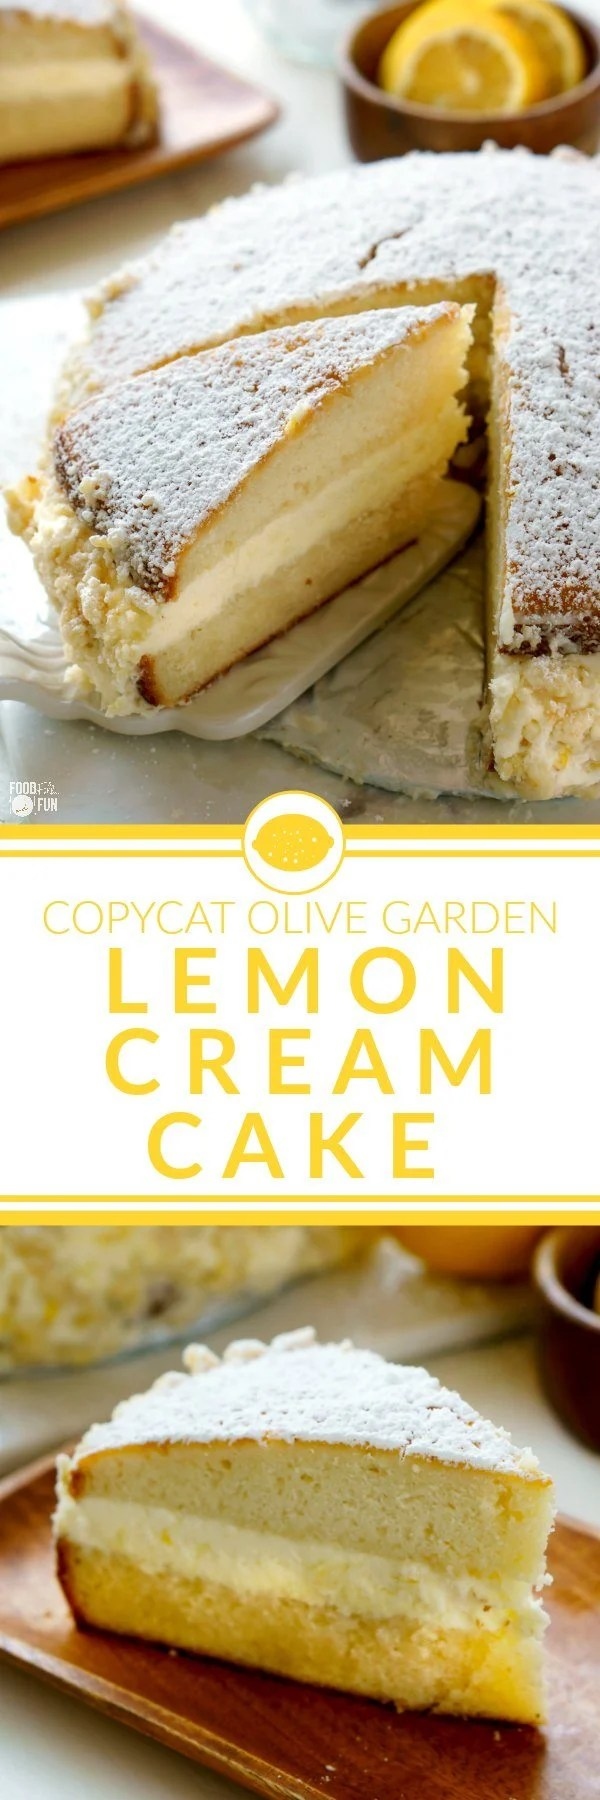 This Copycat Olive Garden Lemon Cream Cake is completely homemade, and is every bit as good as the original—and dare I say, even better! via @foodfolksandfun